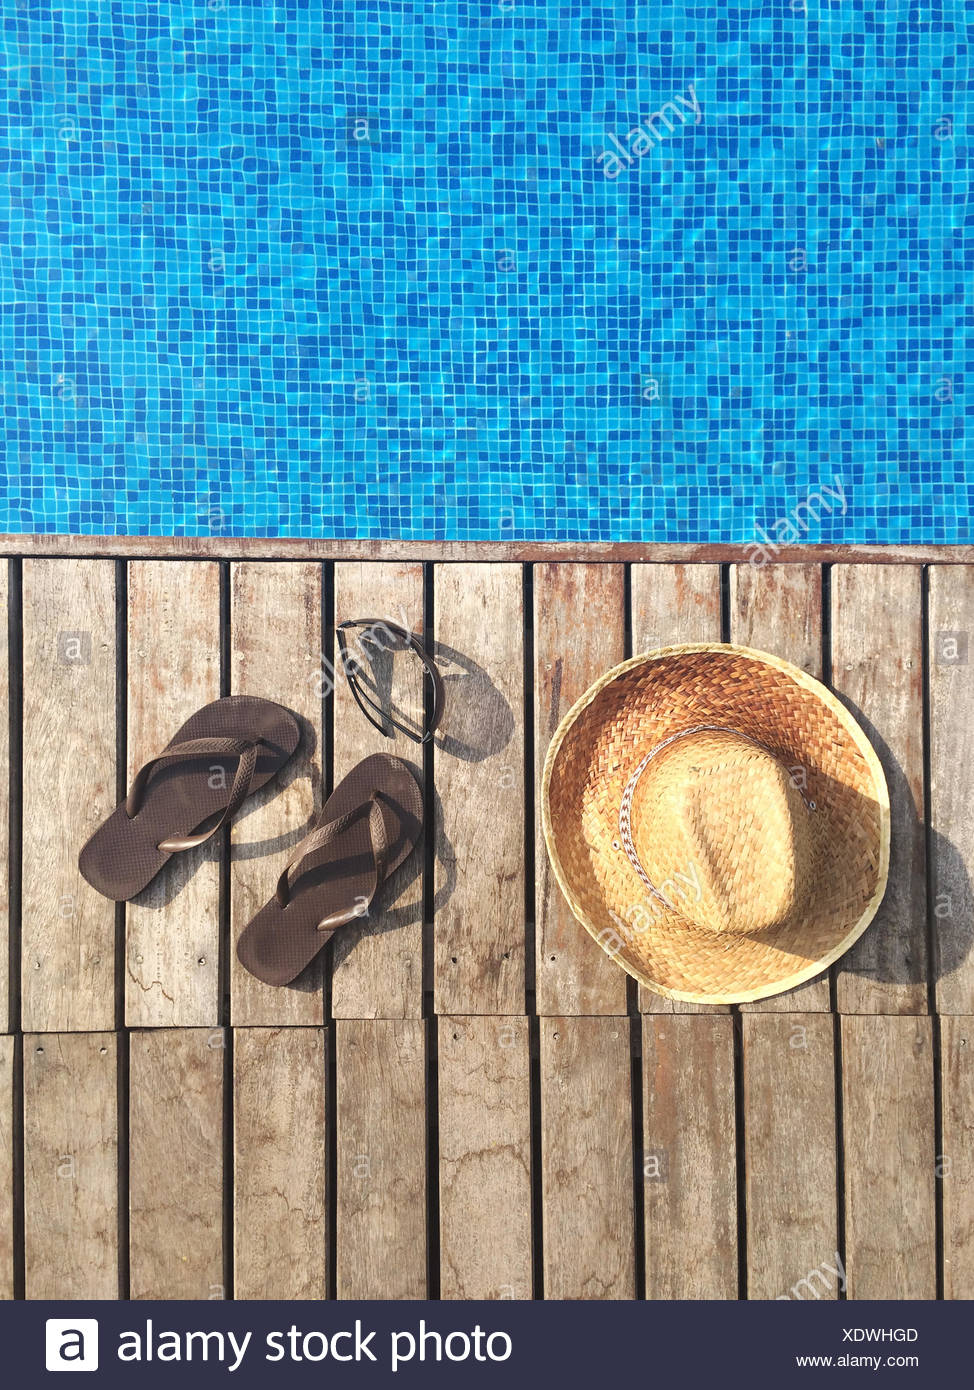 Sun hat, flip-flops and sunglasses by swimming pool - Stock Image